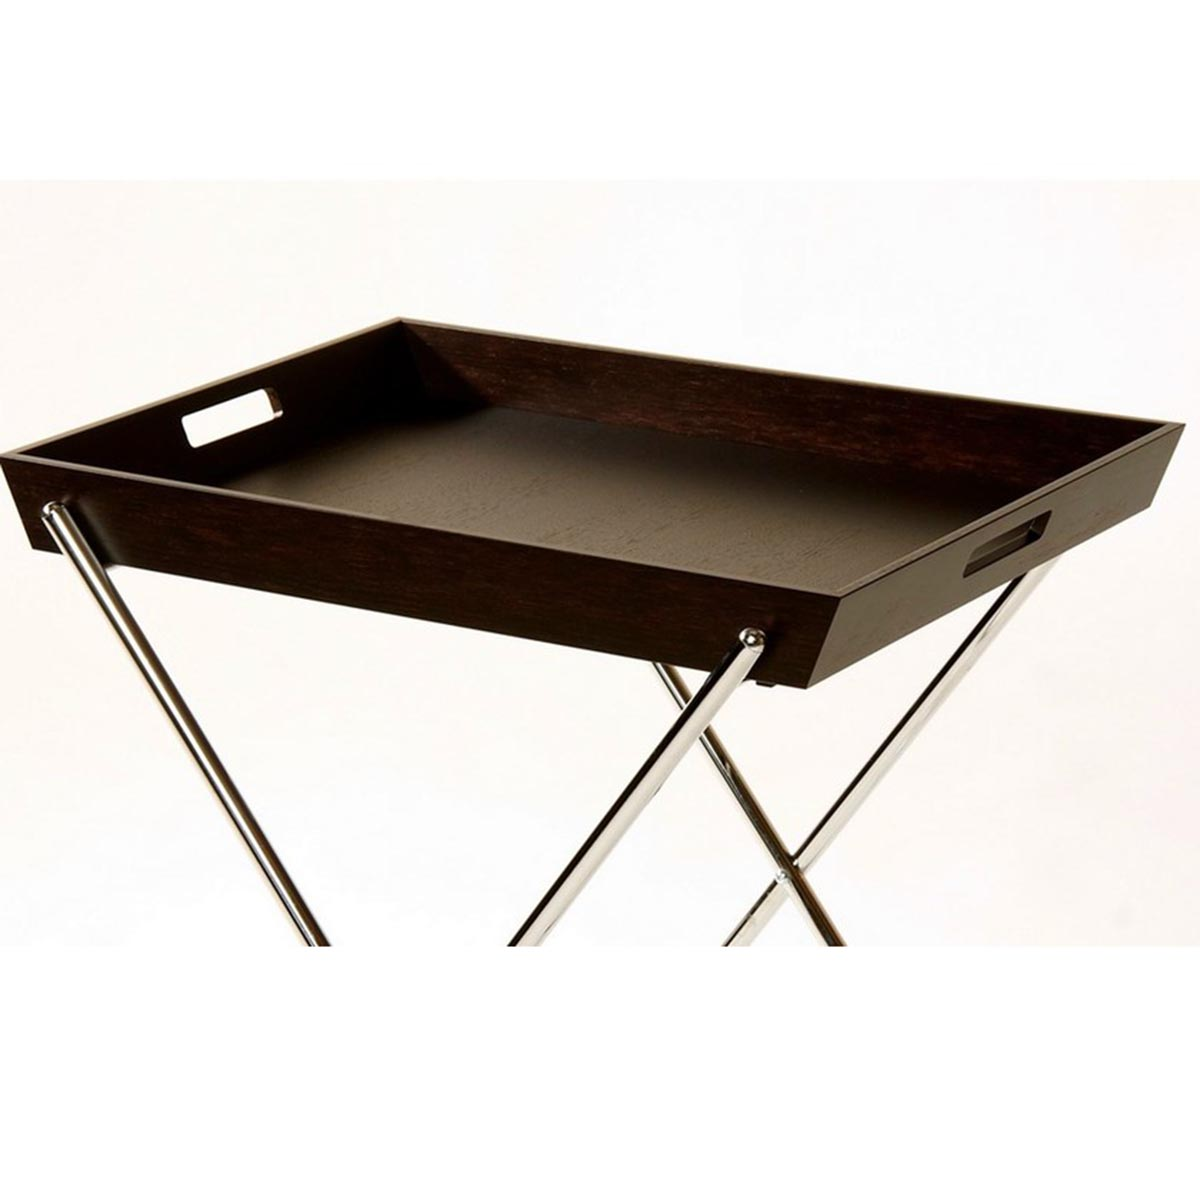 Table d 39 appoint miami adentro pas cher grandes marques - Table d appoint design pas cher ...